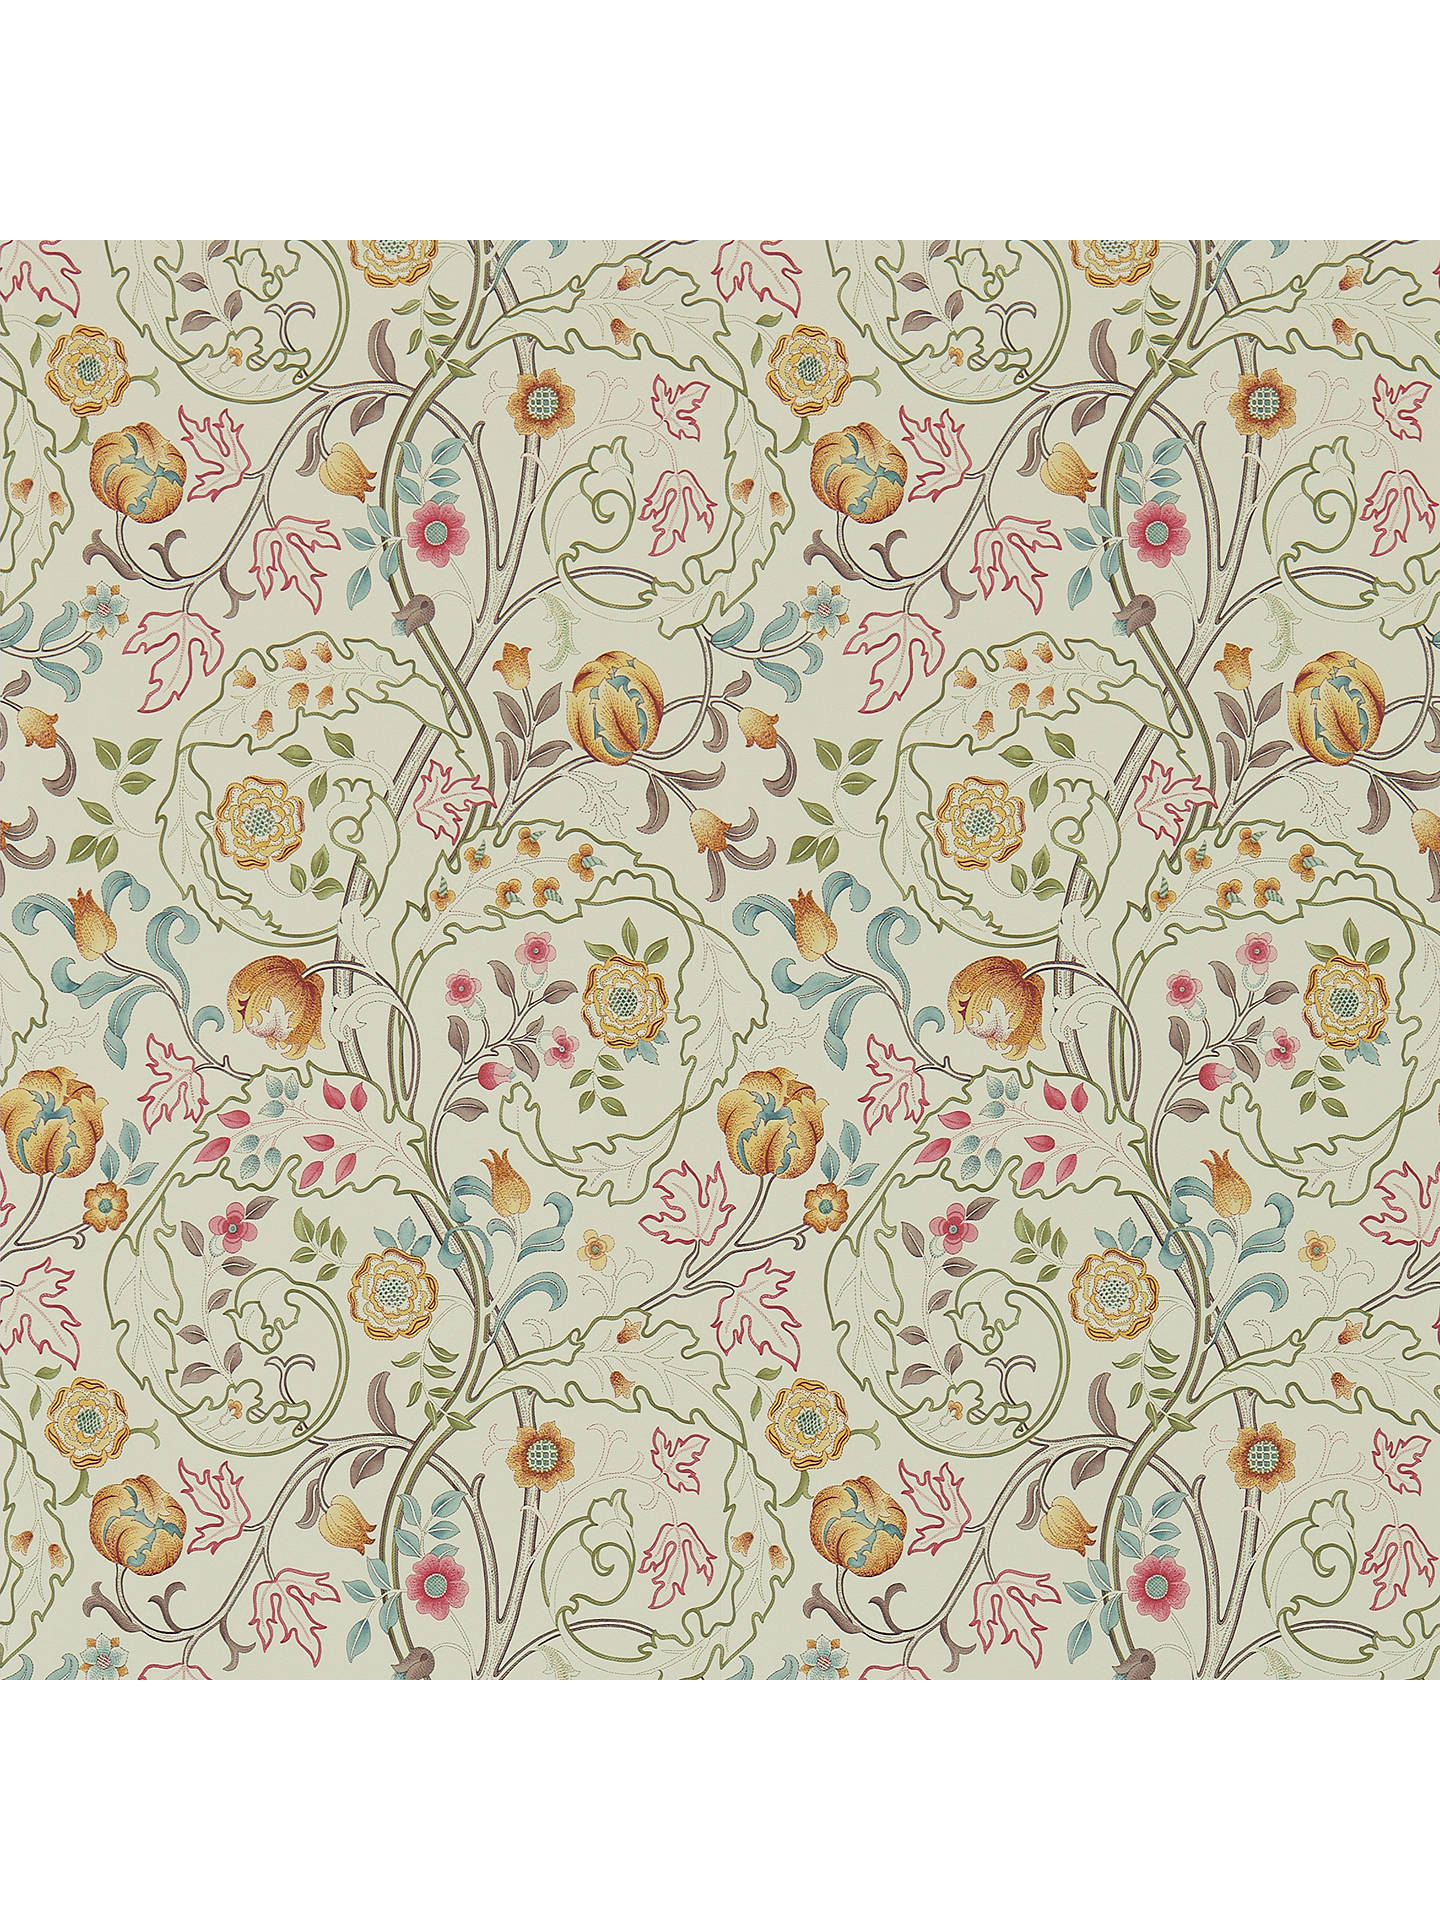 Buy Morris & Co. Mary Isobel Wallpaper, Russet/Taupe, DM3W214730 Online at johnlewis.com